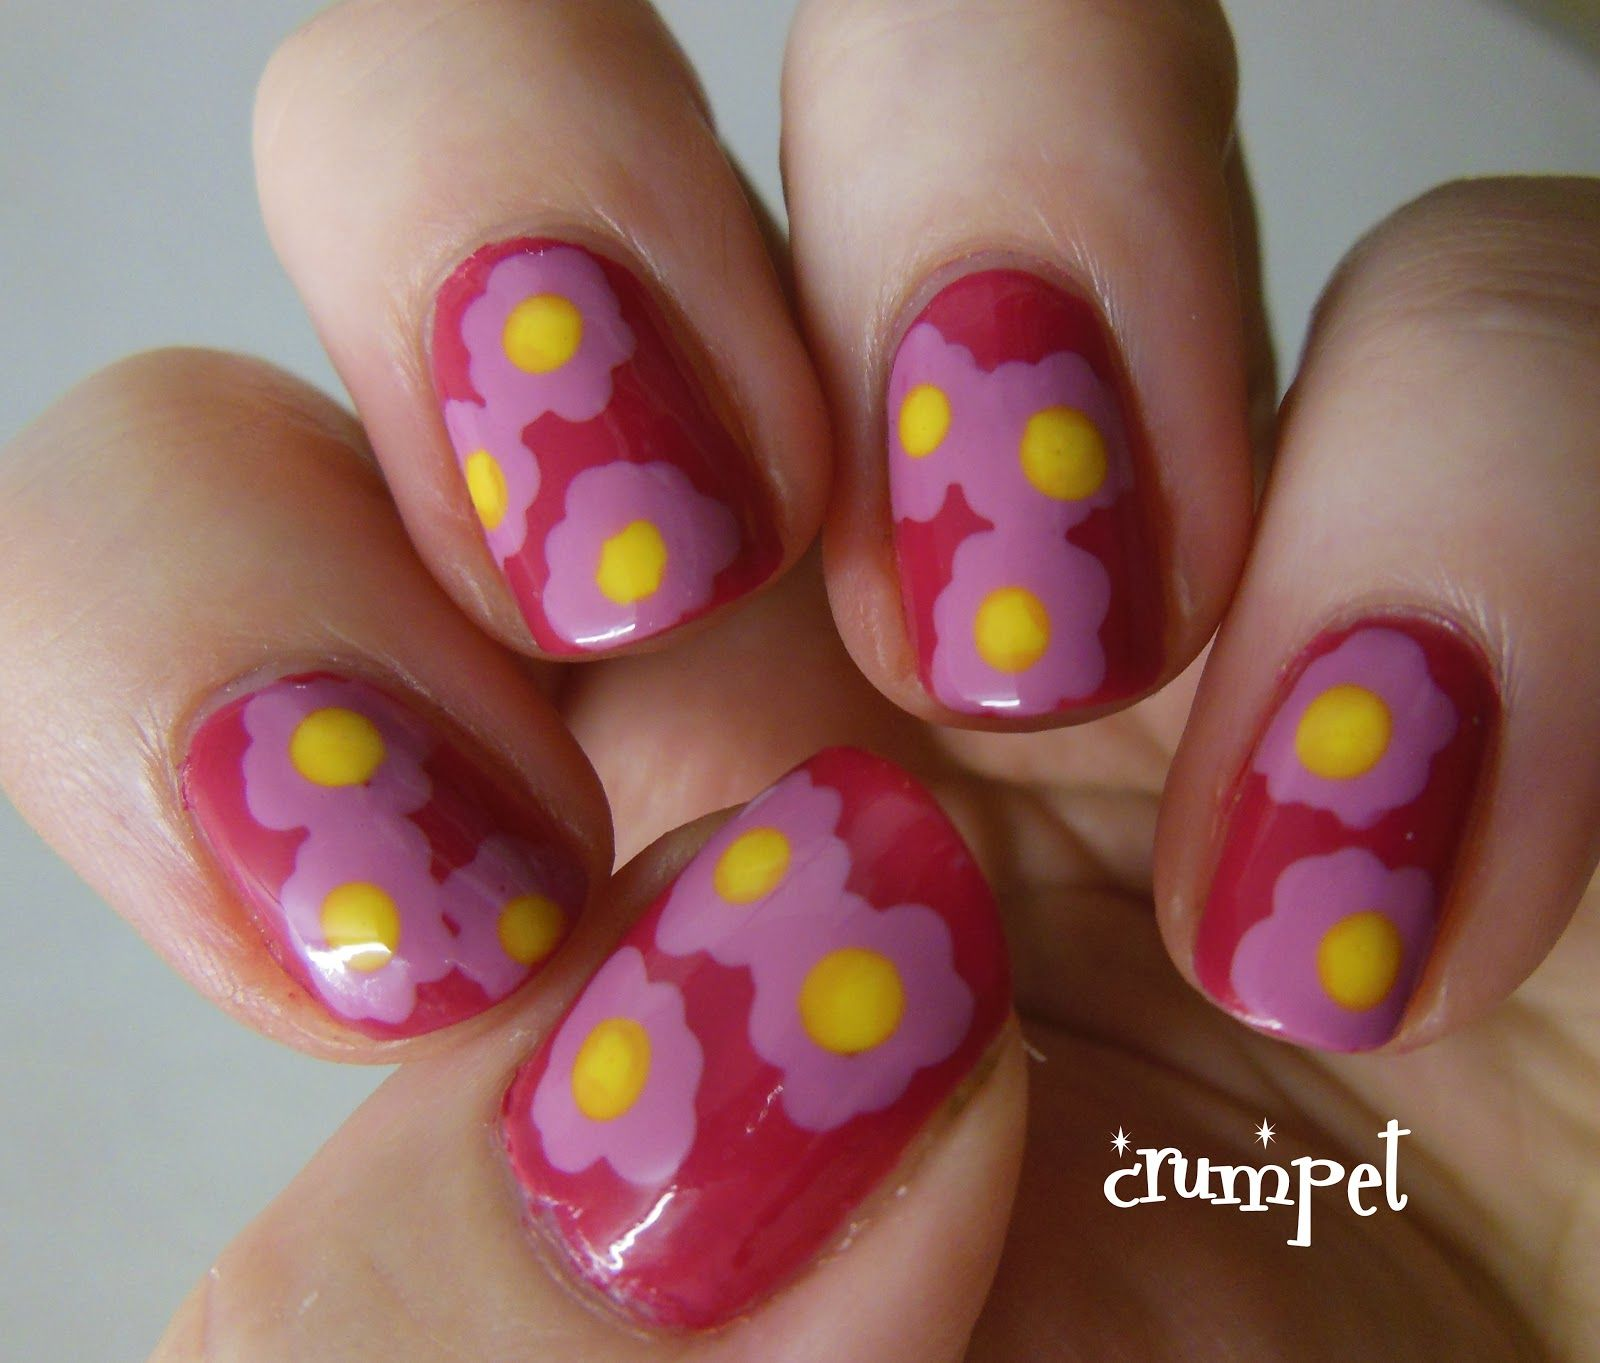 The crumpet go pink wednesday flowers nails pinterest